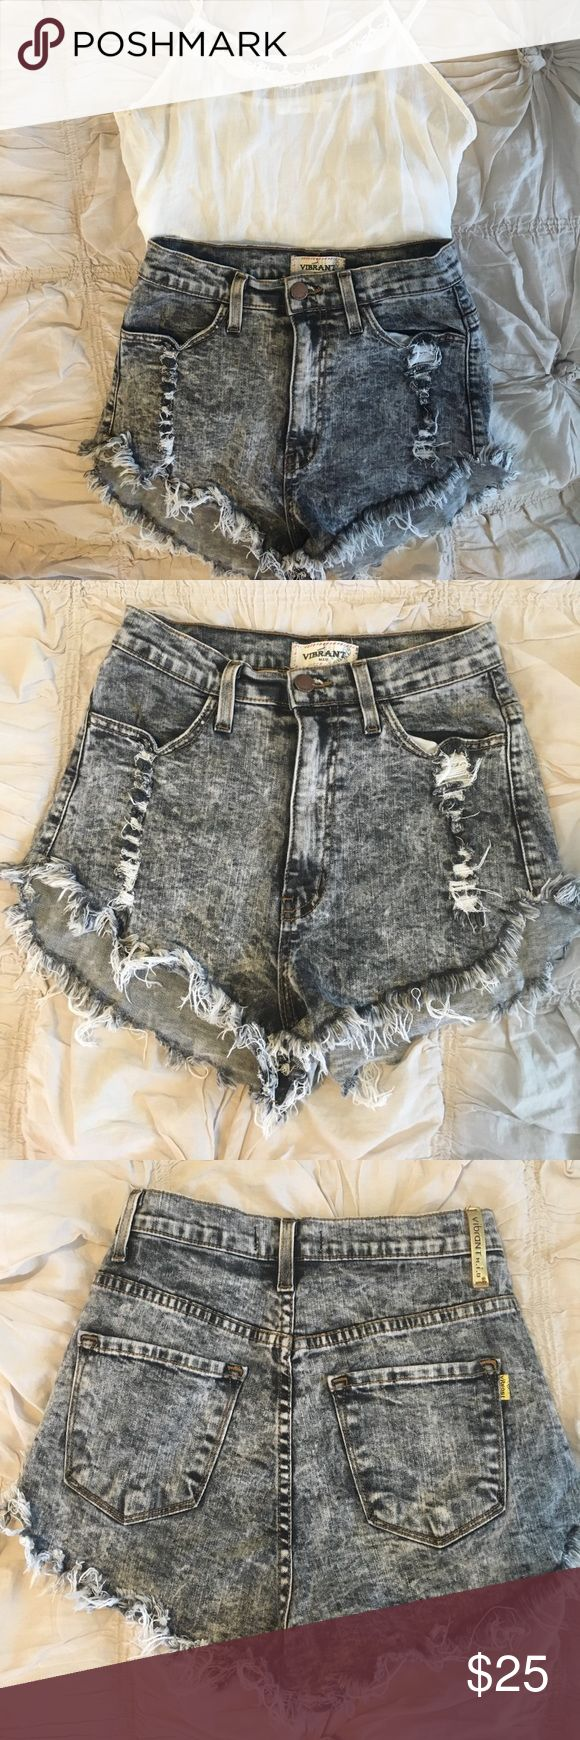 High Waisted Shorts High Waisted Acid Wash Shorts. More of a gray/black acid wash. So cute with any summer outfit!! Hardly worn, great condition. From Apricot Lane Peoria. Vibrant Shorts Jean Shorts